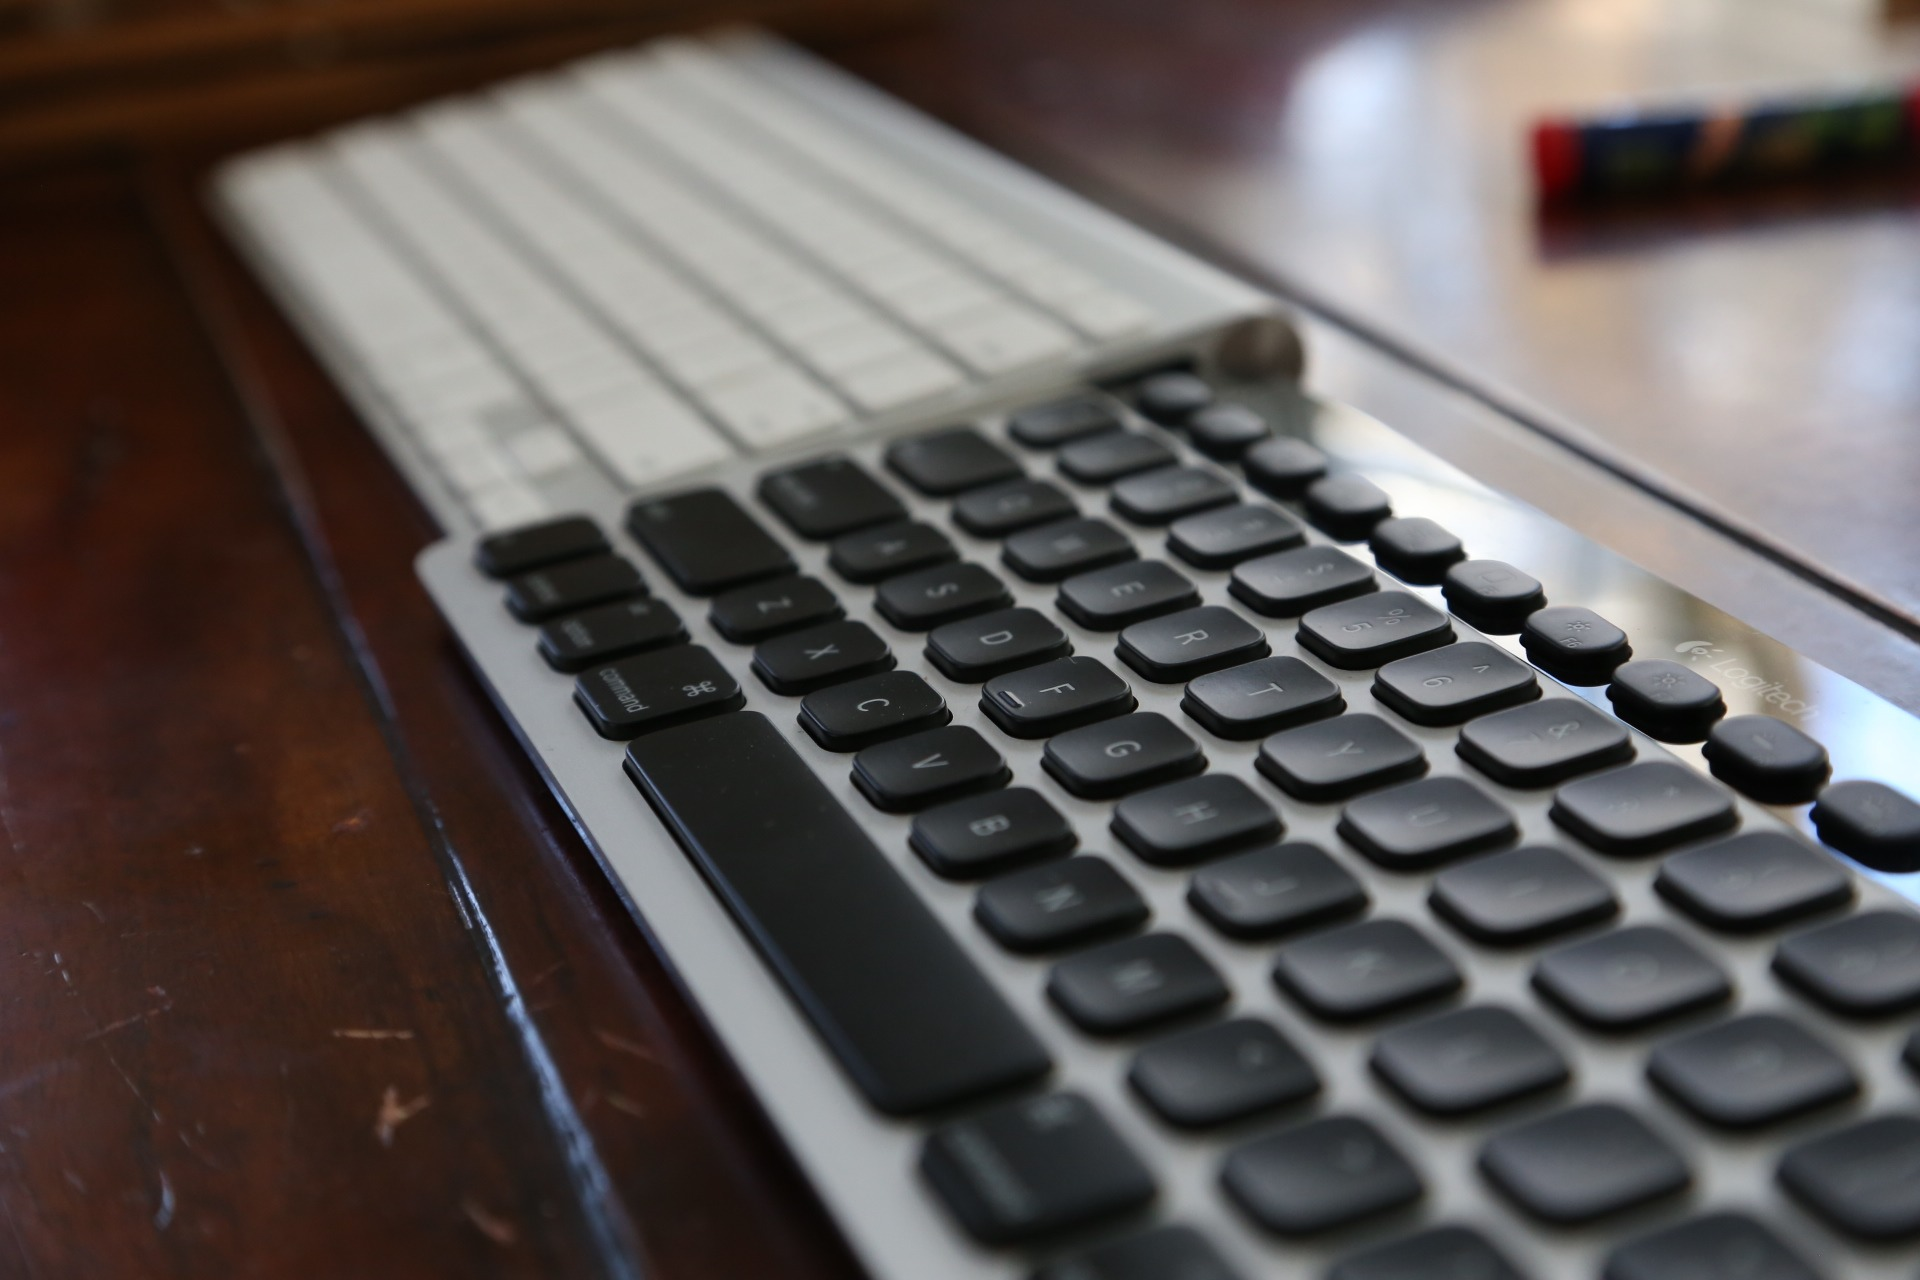 Review: Logitech K811 Bluetooth Easy-Switch Keyboard - a month later